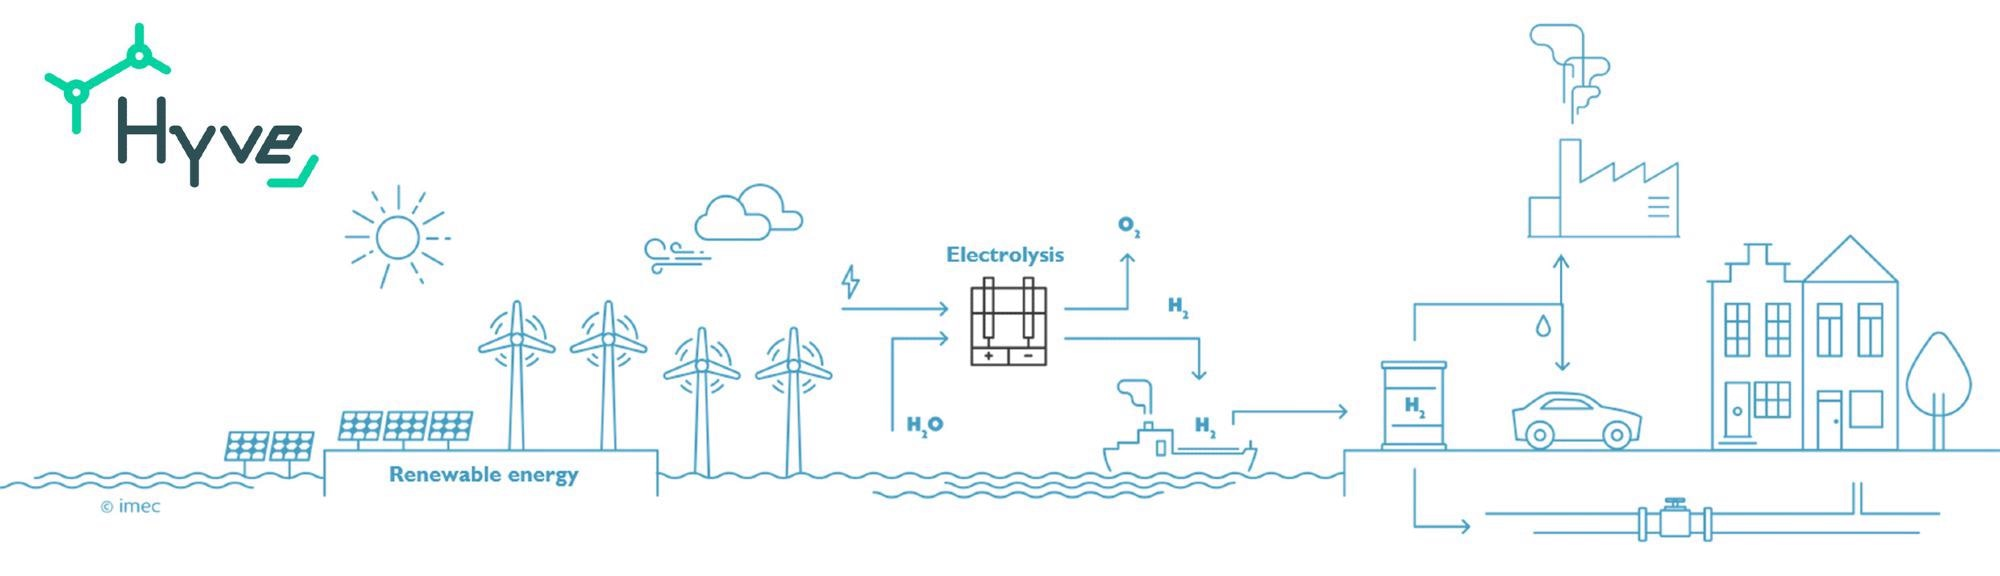 Flemish Expertise Centres Join Forces with Industry to Push Green Hydrogen Production Forward